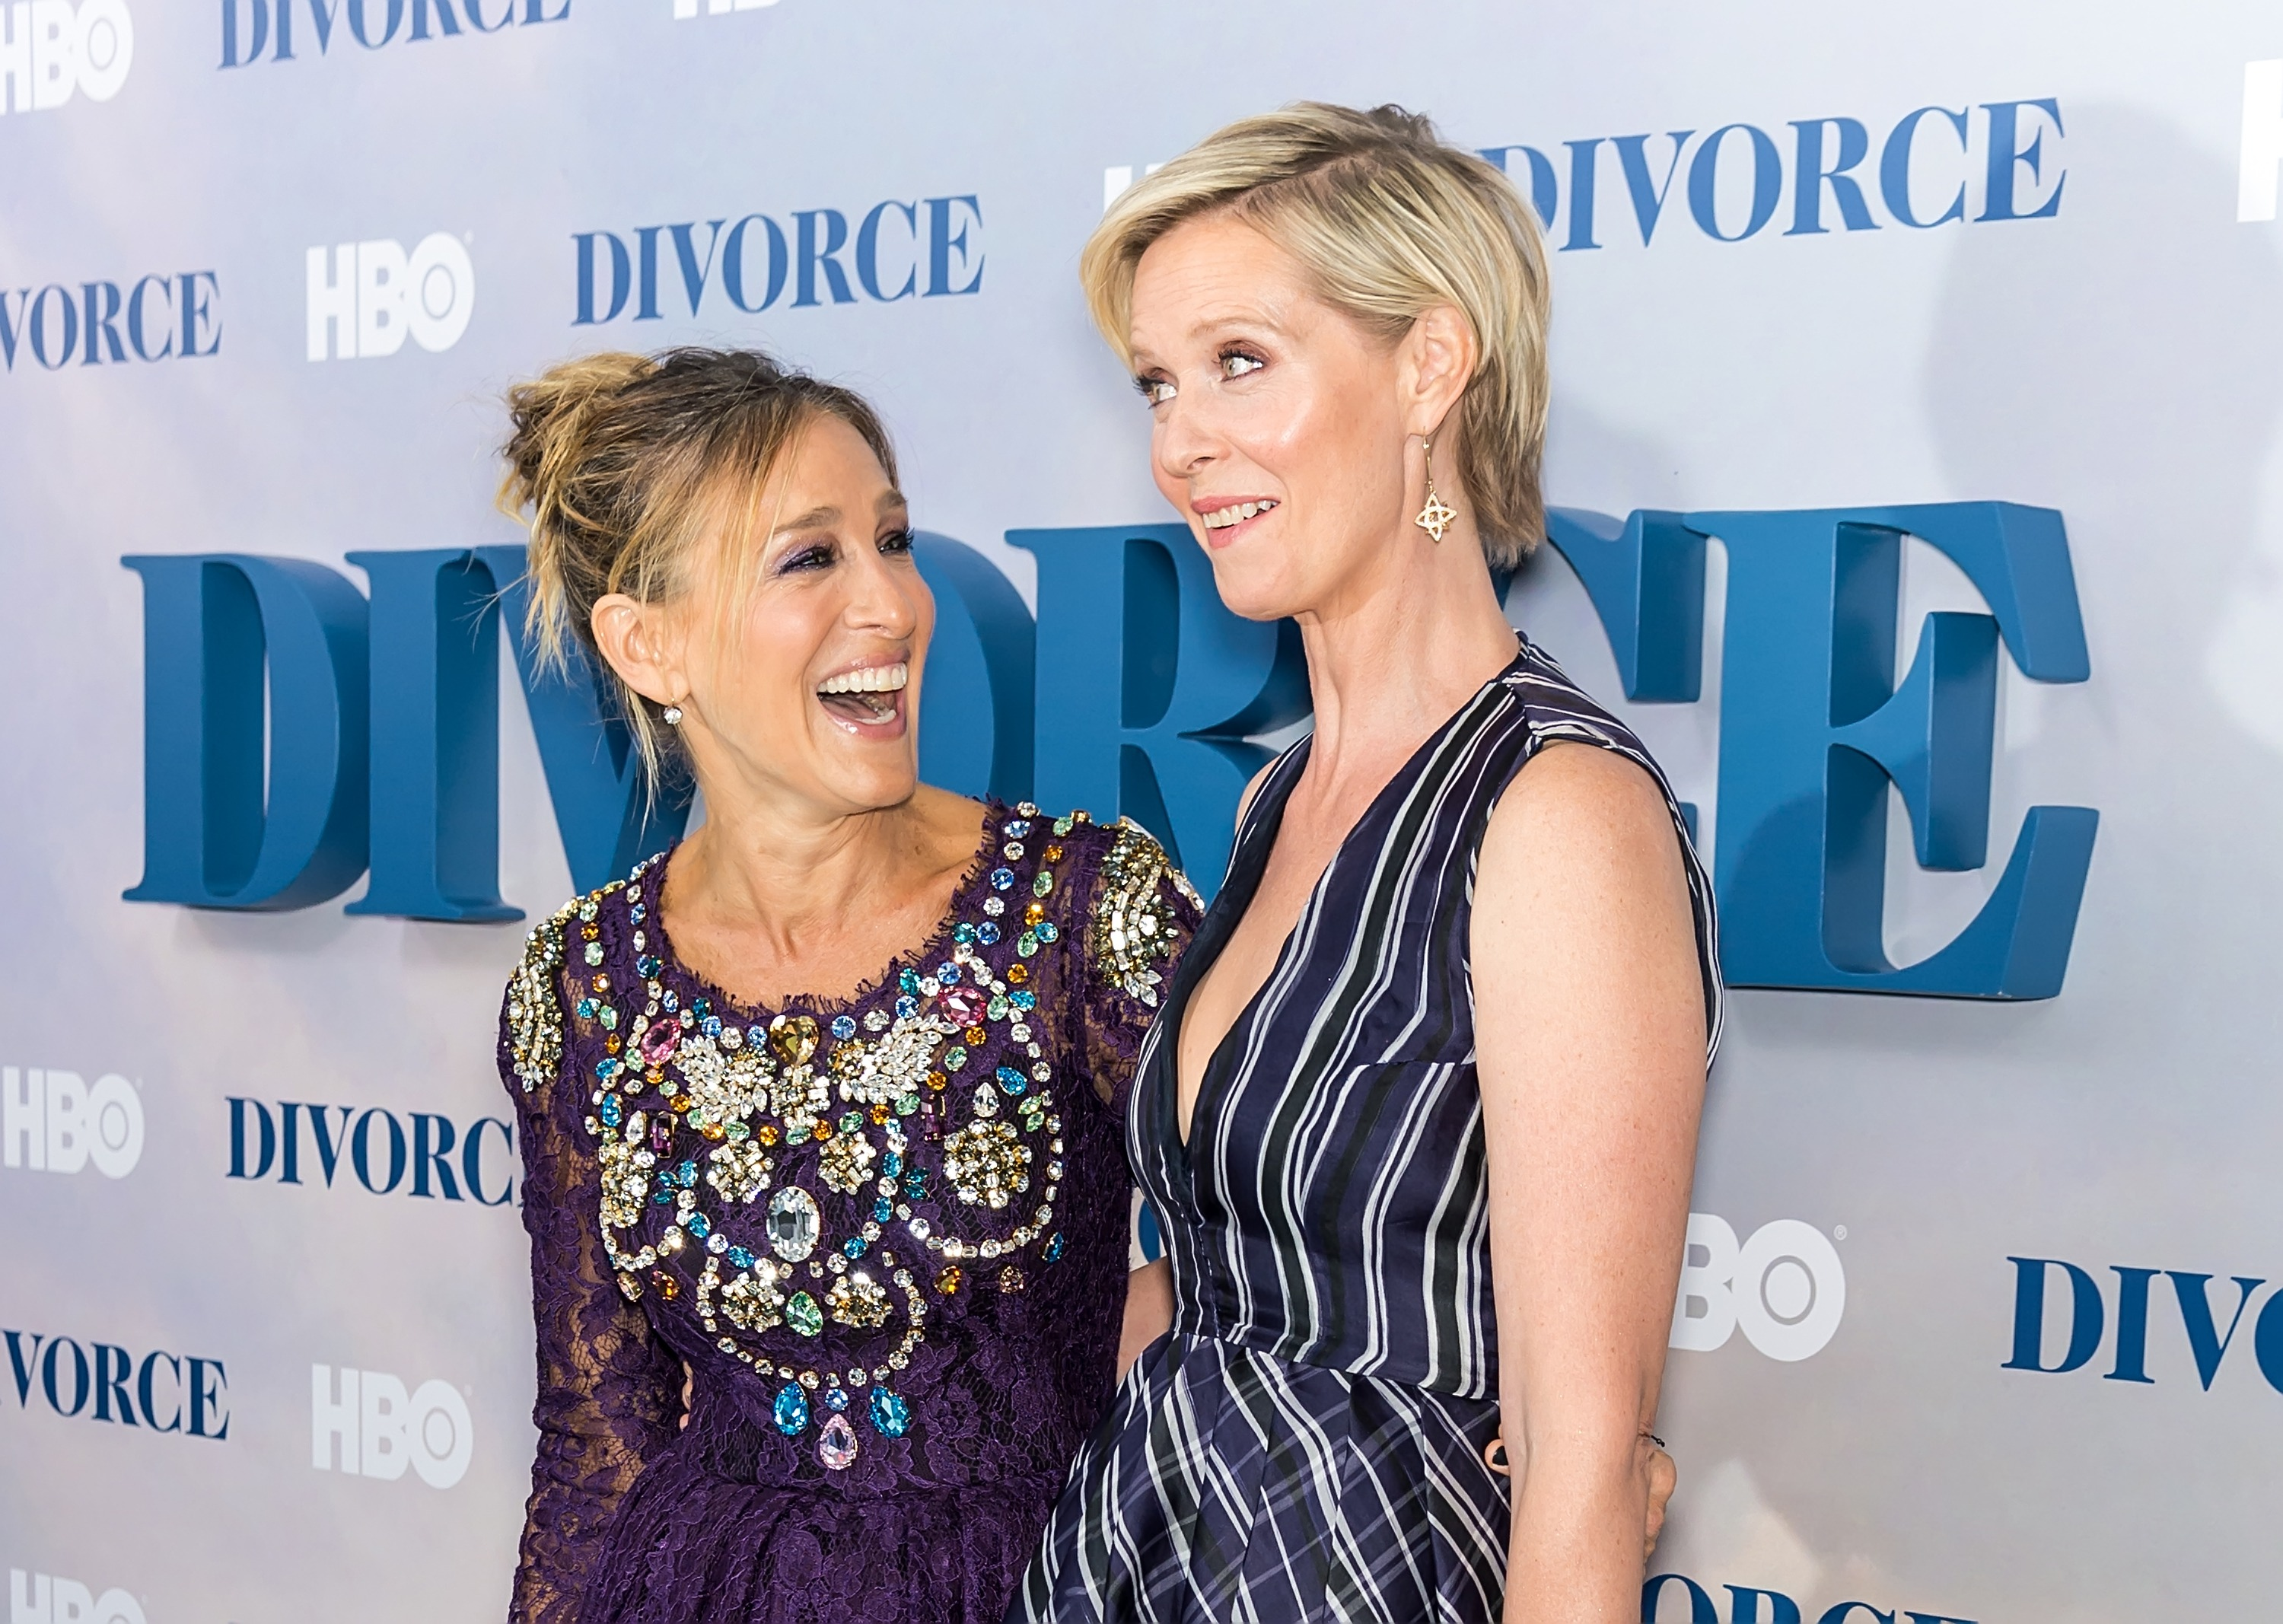 Actors Sarah Jessica Parker and Cynthia Nixon attend the 'Divorce' New York Premiere at SVA Theater on October 4, 2016 in New York City.